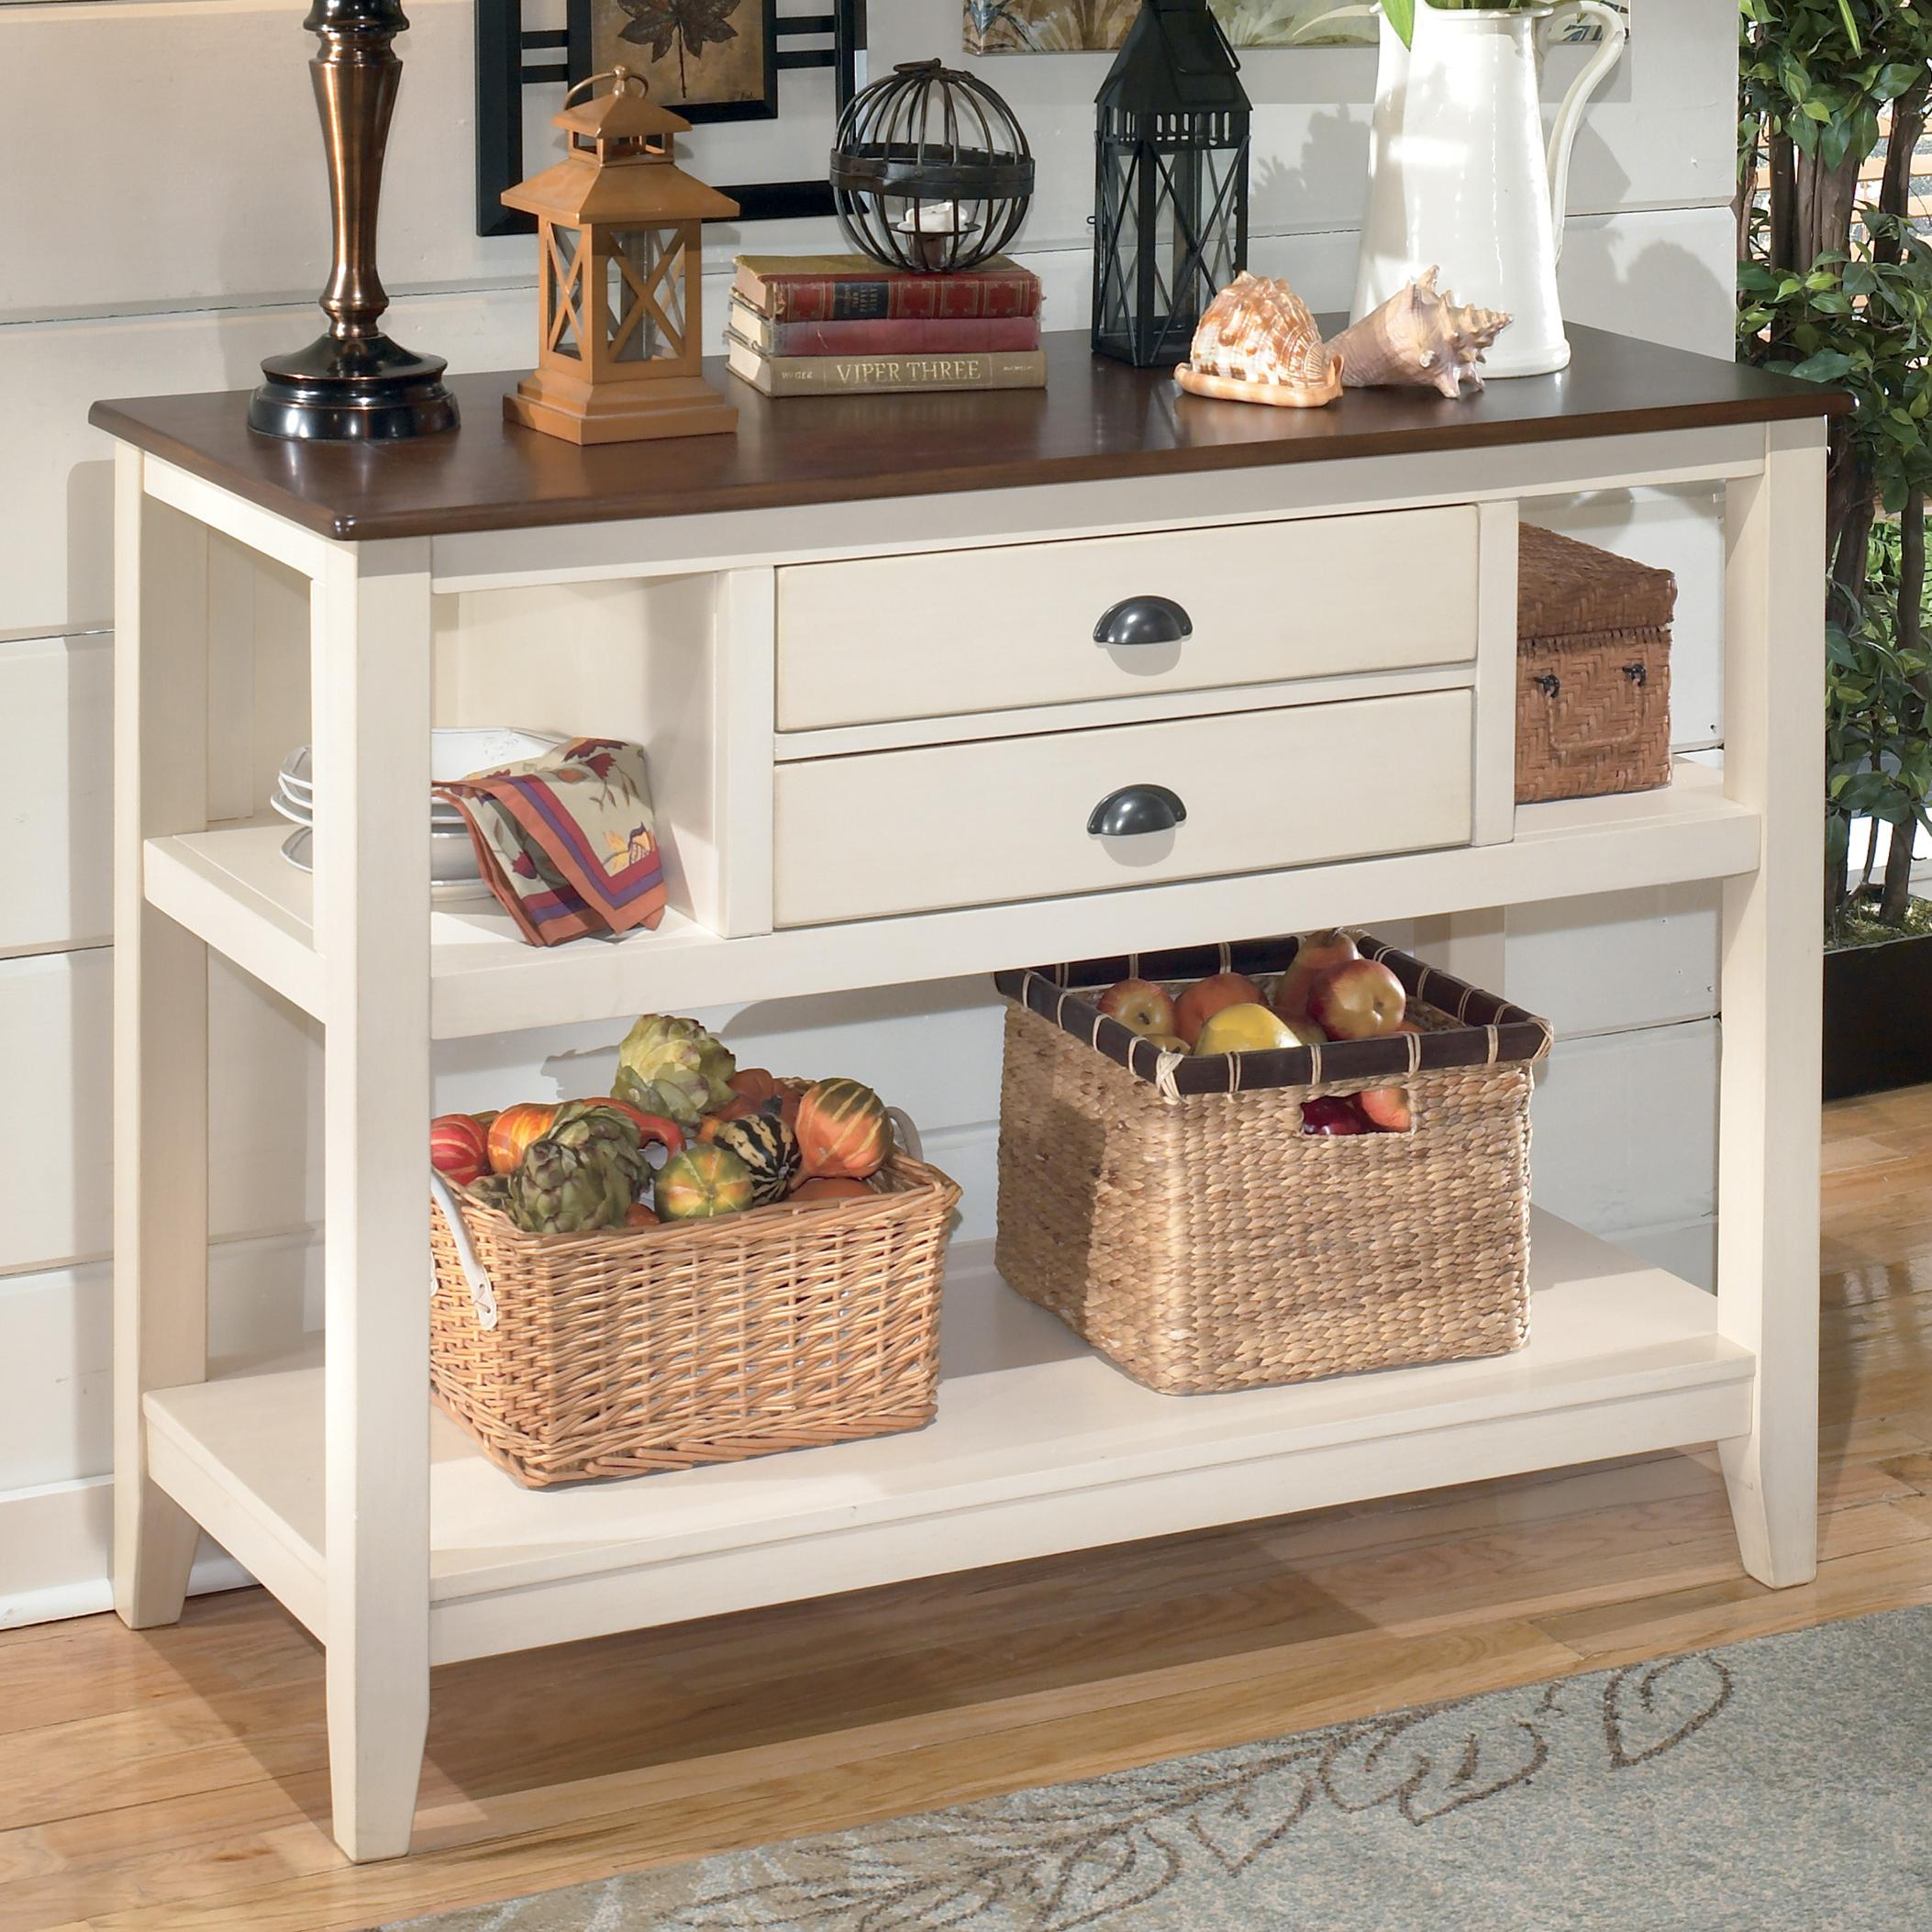 Whitesburg Dining Room Server by Signature Design by Ashley at Catalog Outlet